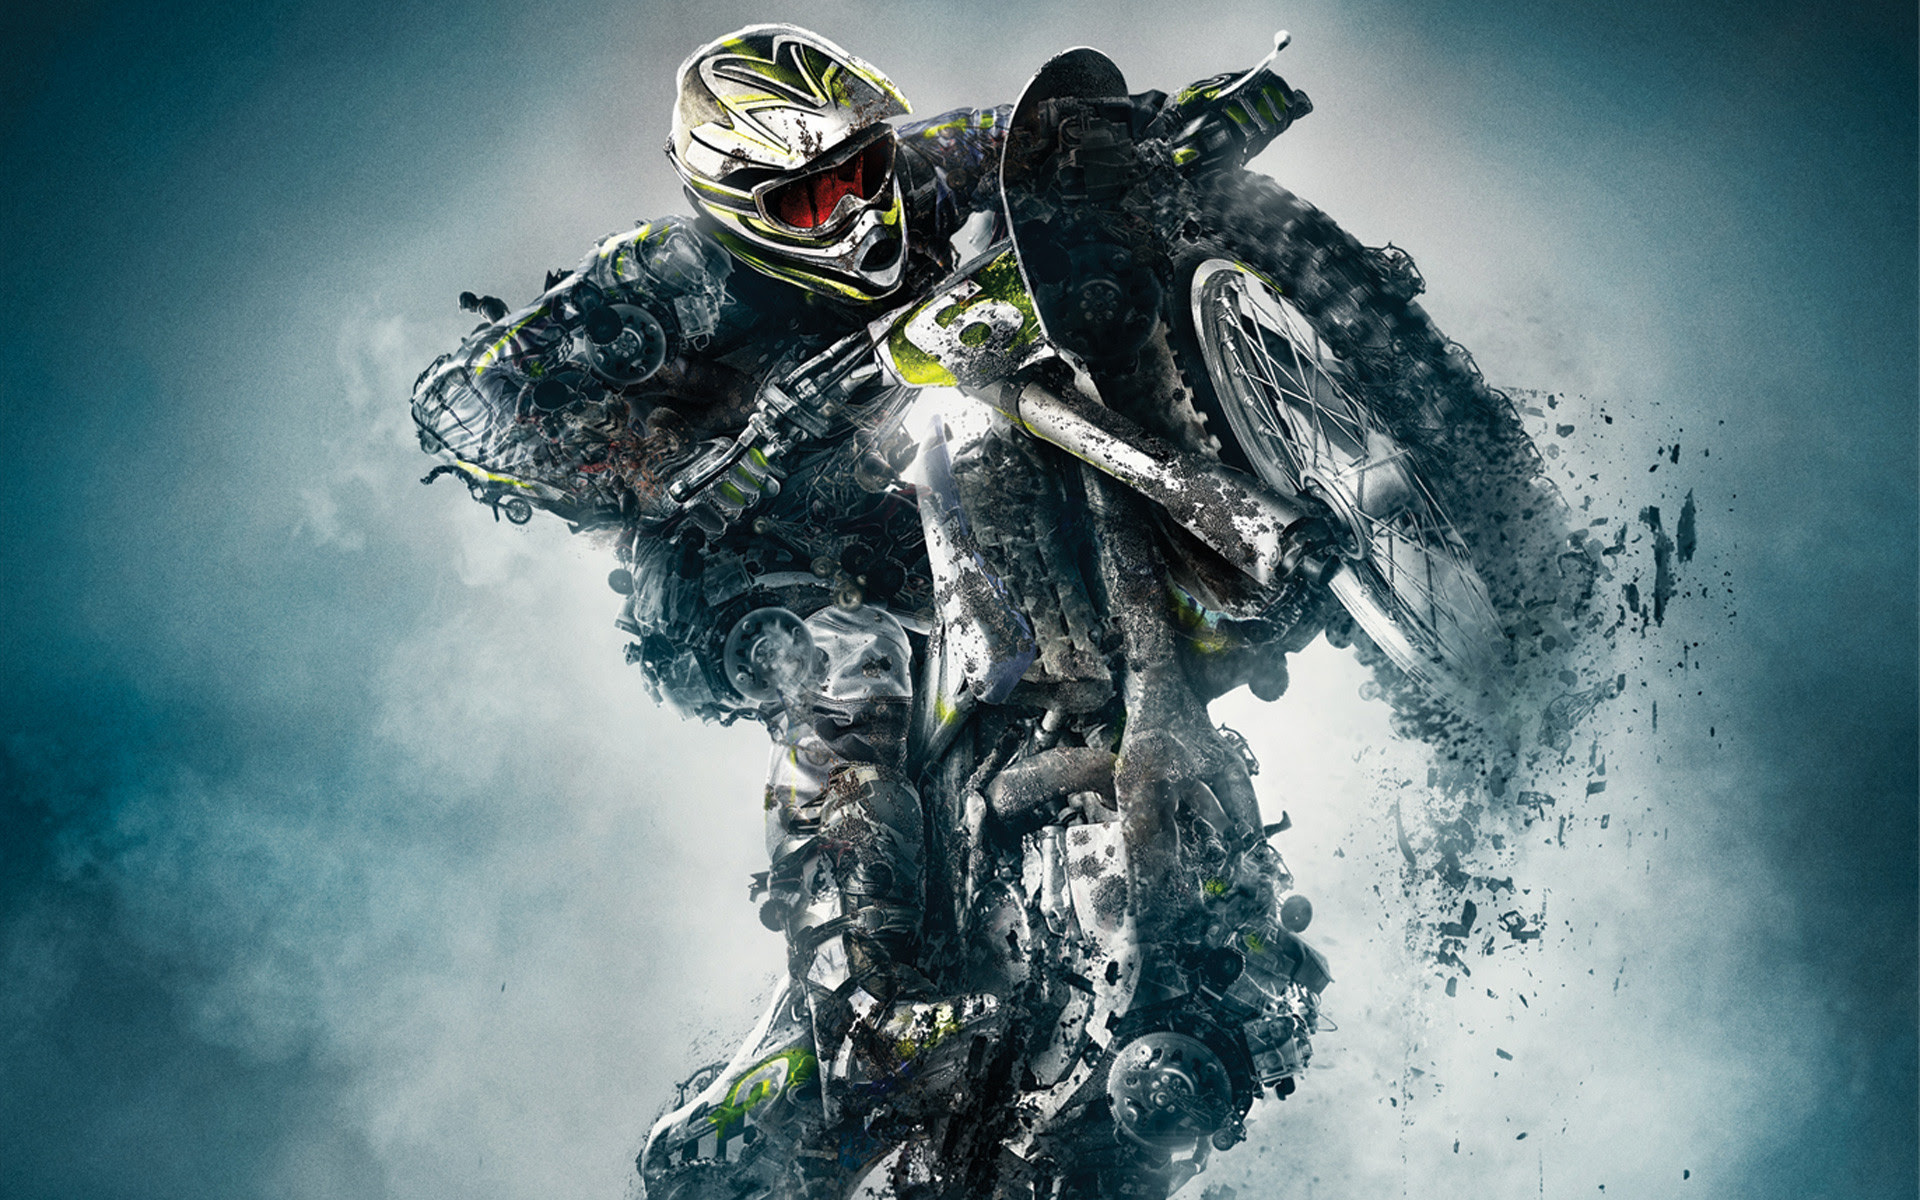 Dirt Bike Wallpaper Hd 65 Images